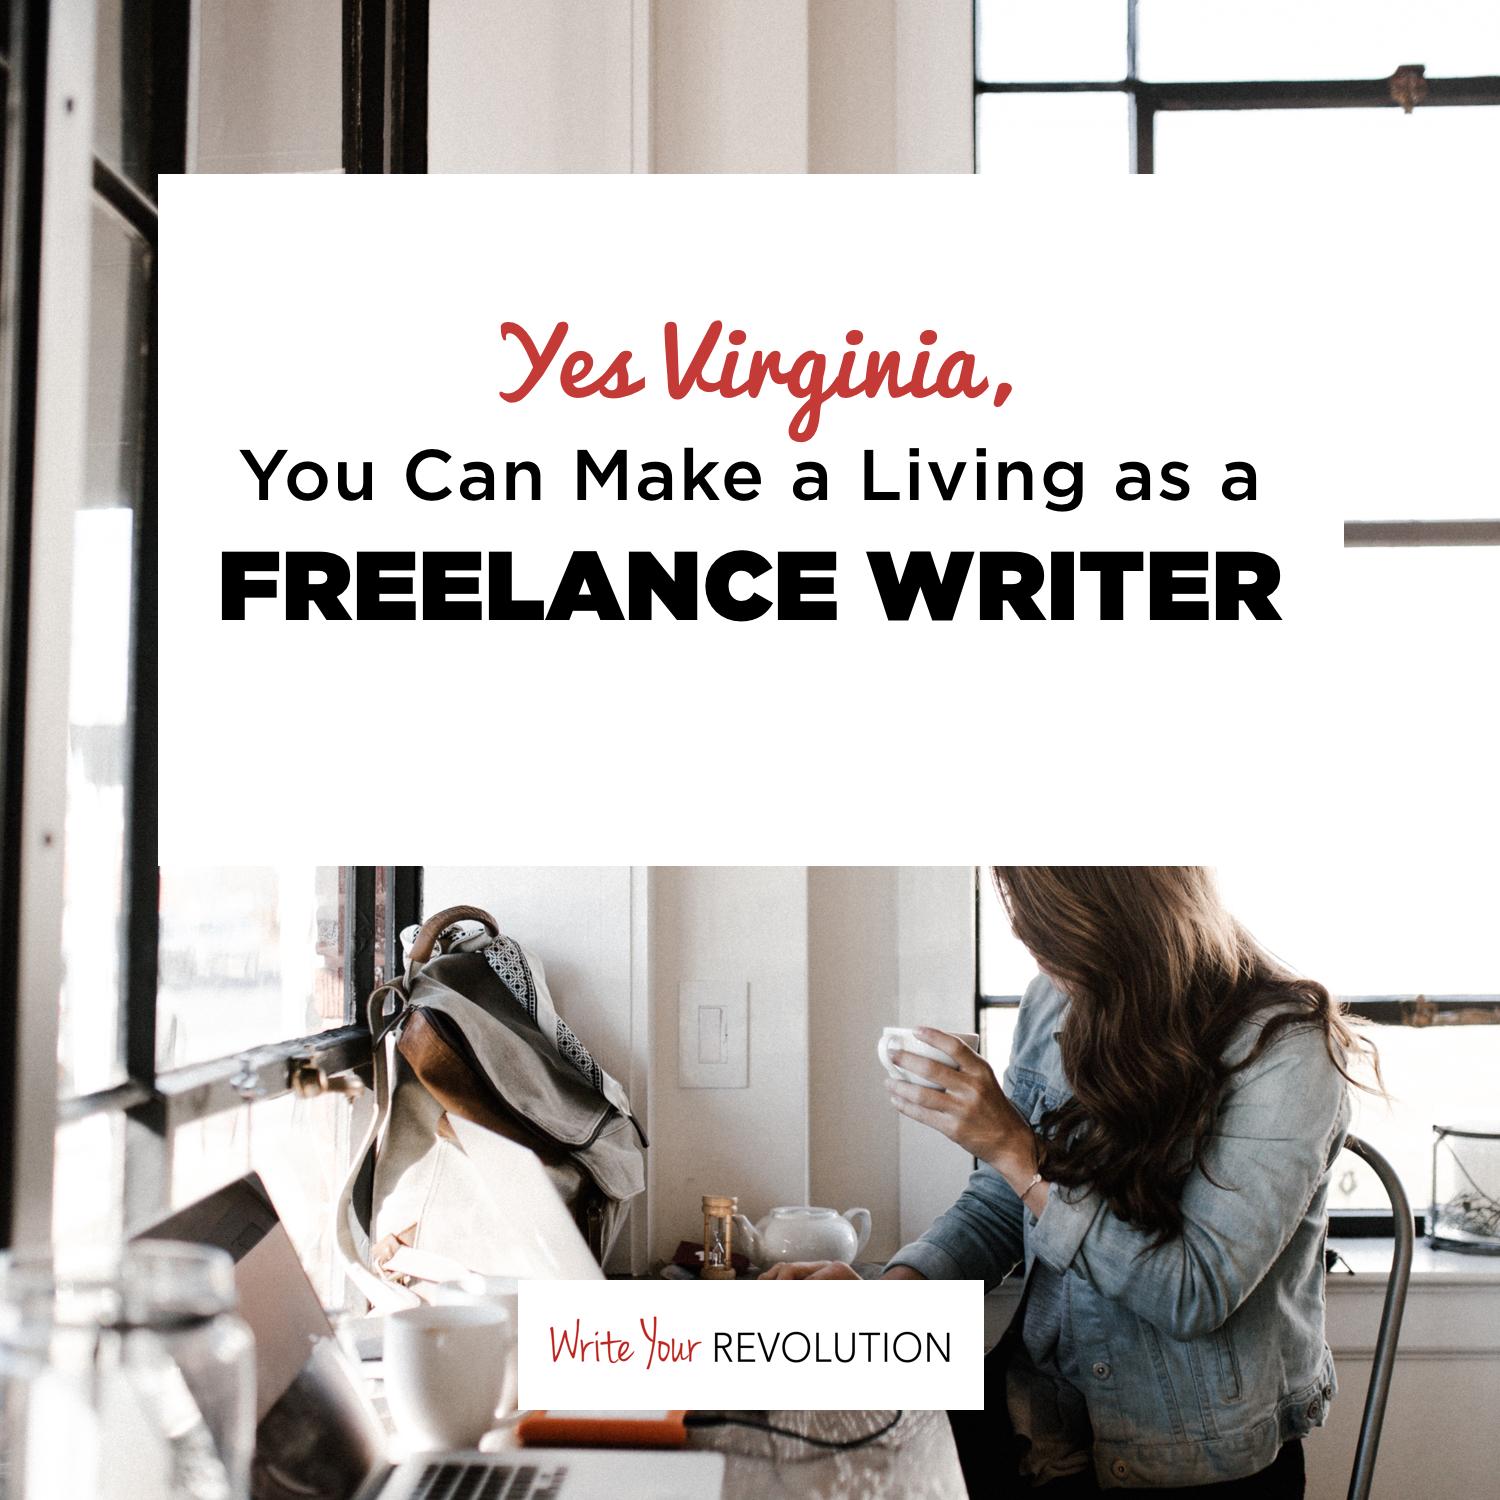 Yes Virginia, You Can Make a Living as a Freelance Writer…